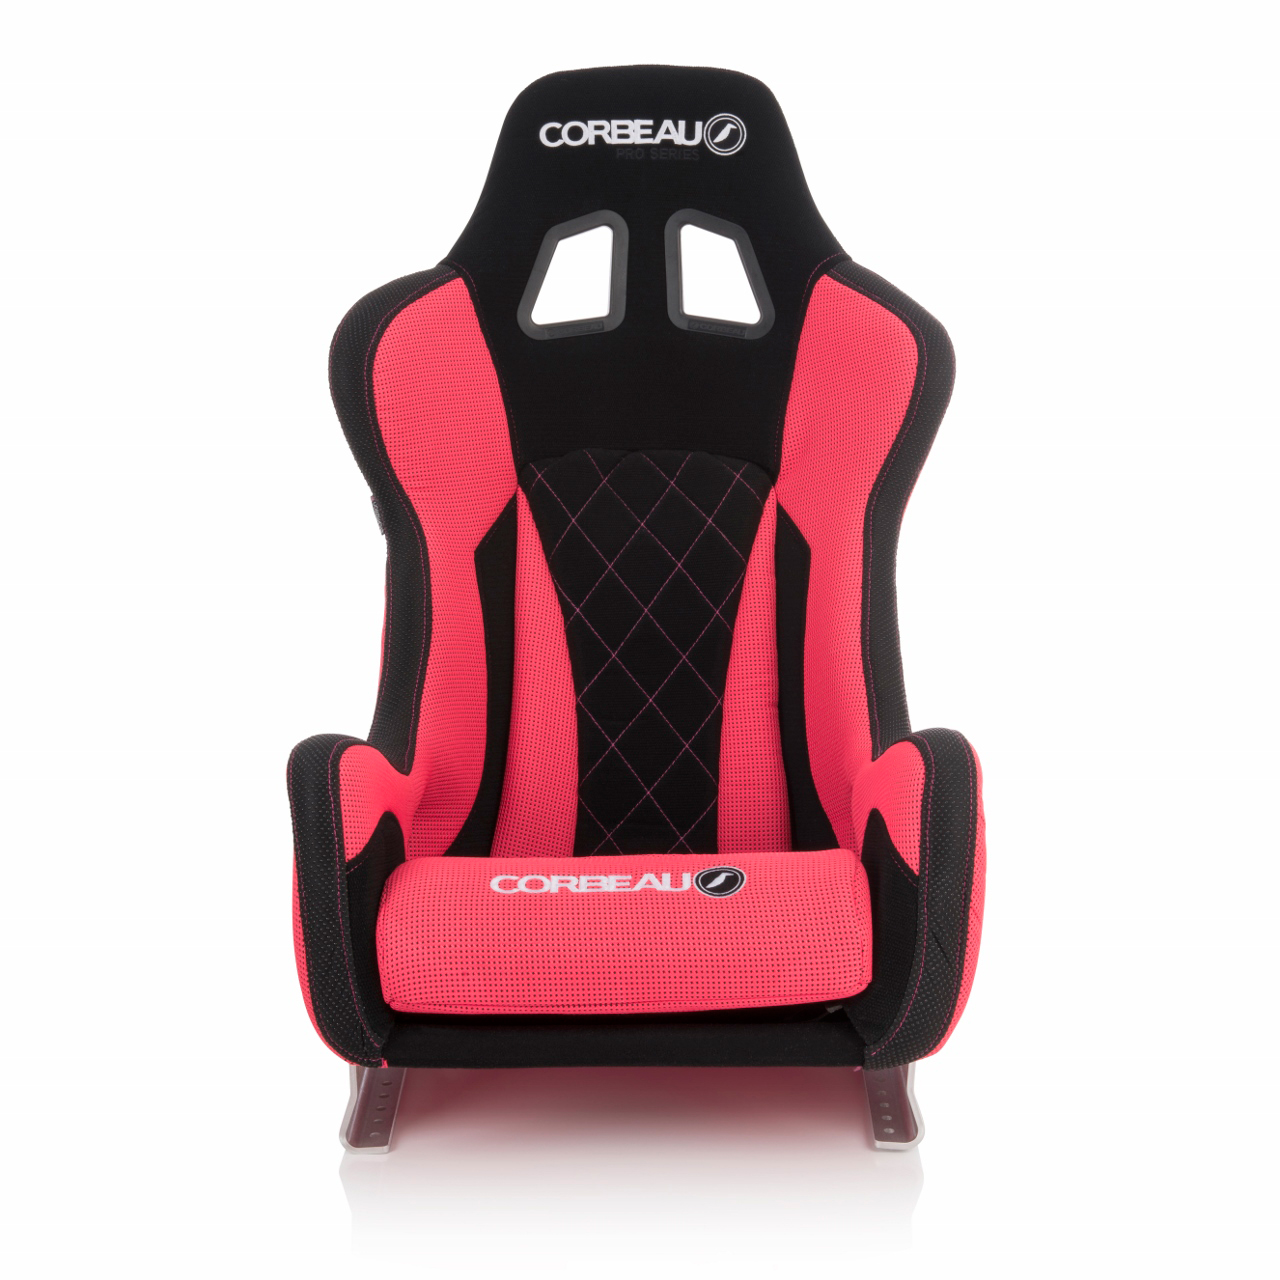 Corbeau Pro-Series X Bucket Seat with Red Elite Upgrade